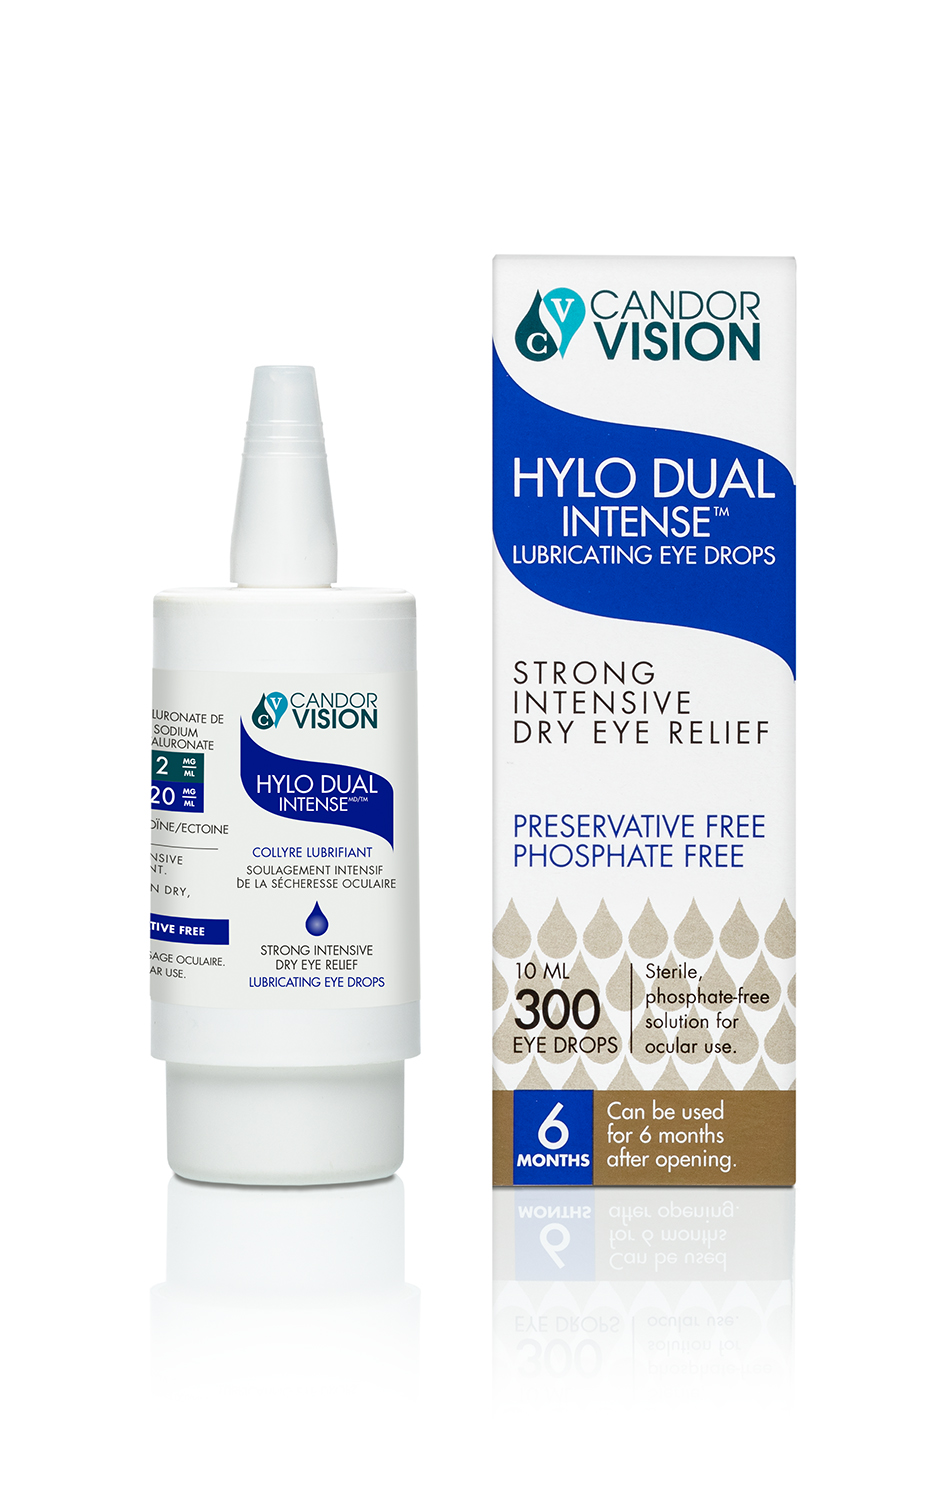 Hylo dual with Sodium Hyalouronate and Ectoine